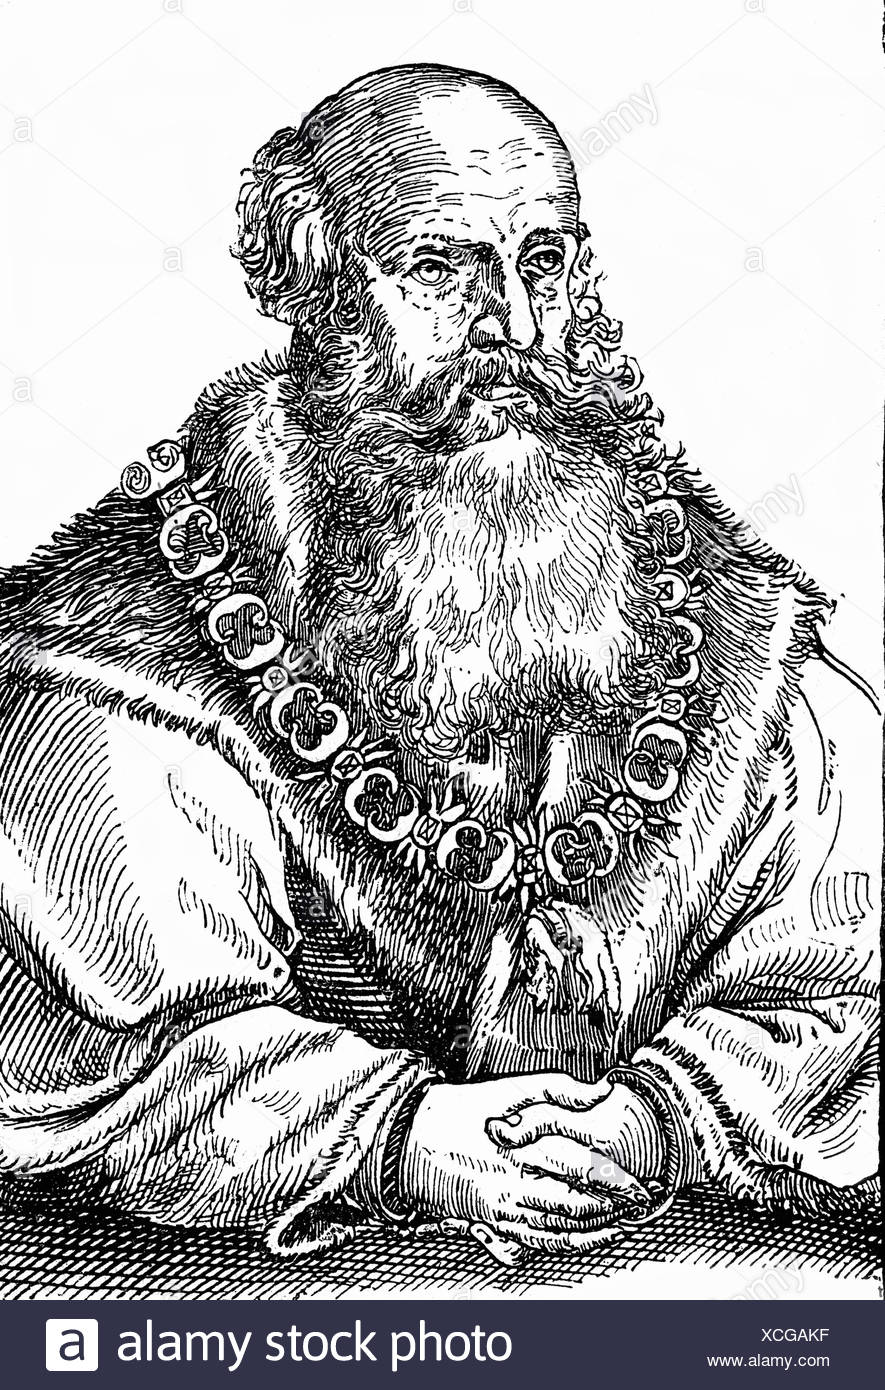 George 'the Bearded', 27.8.1471 - 17.4.1539, Duke of Saxony 1500 - 1539, half length, contemporary woodcut, 16th century, Additional-Rights-Clearances-NA - Stock Image